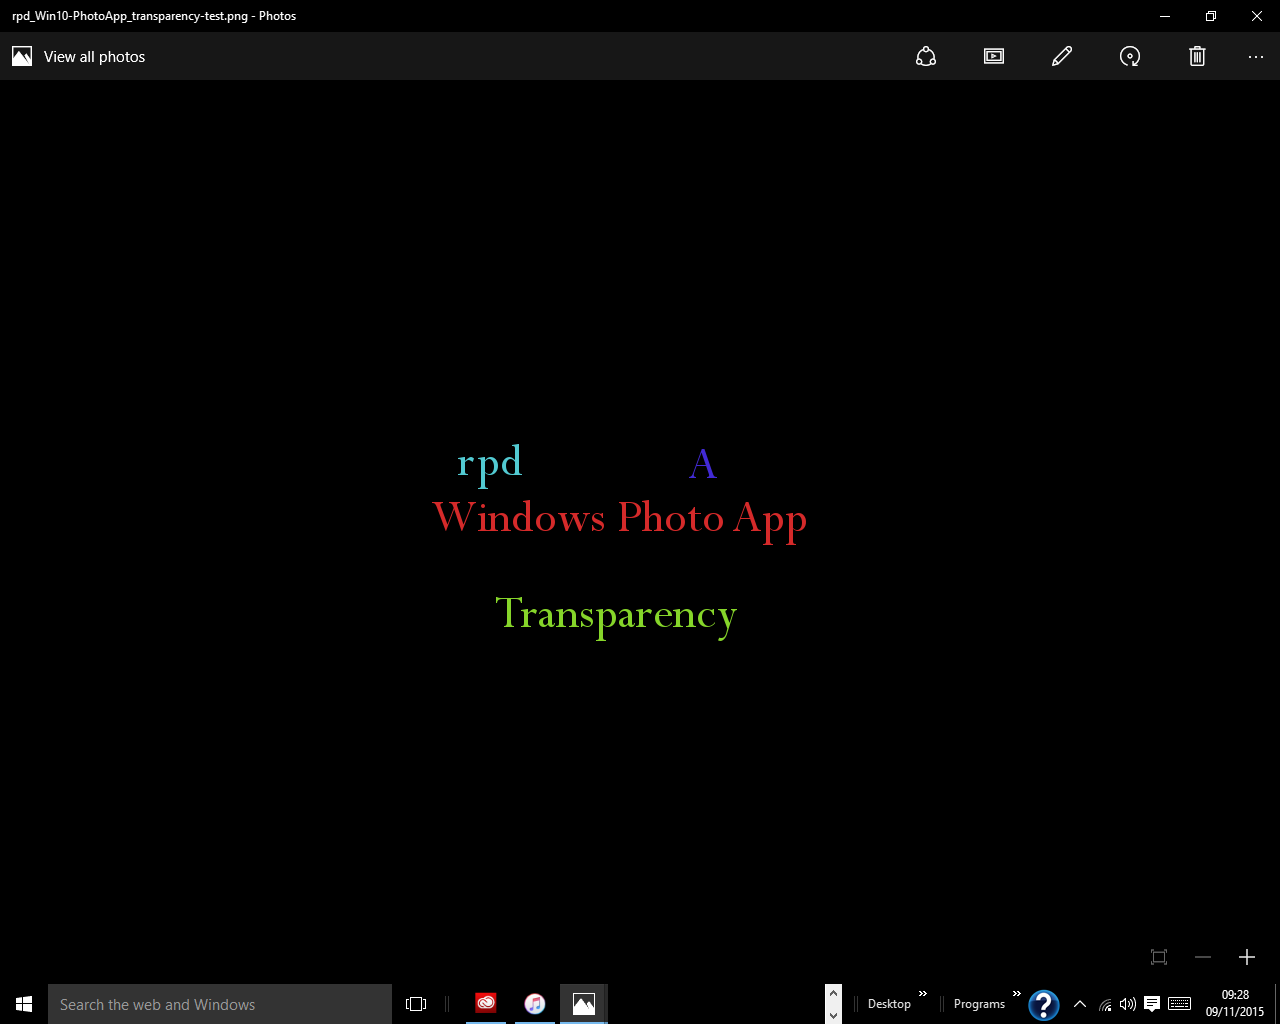 Win10_Photo_App_png_transparency_not_displaying